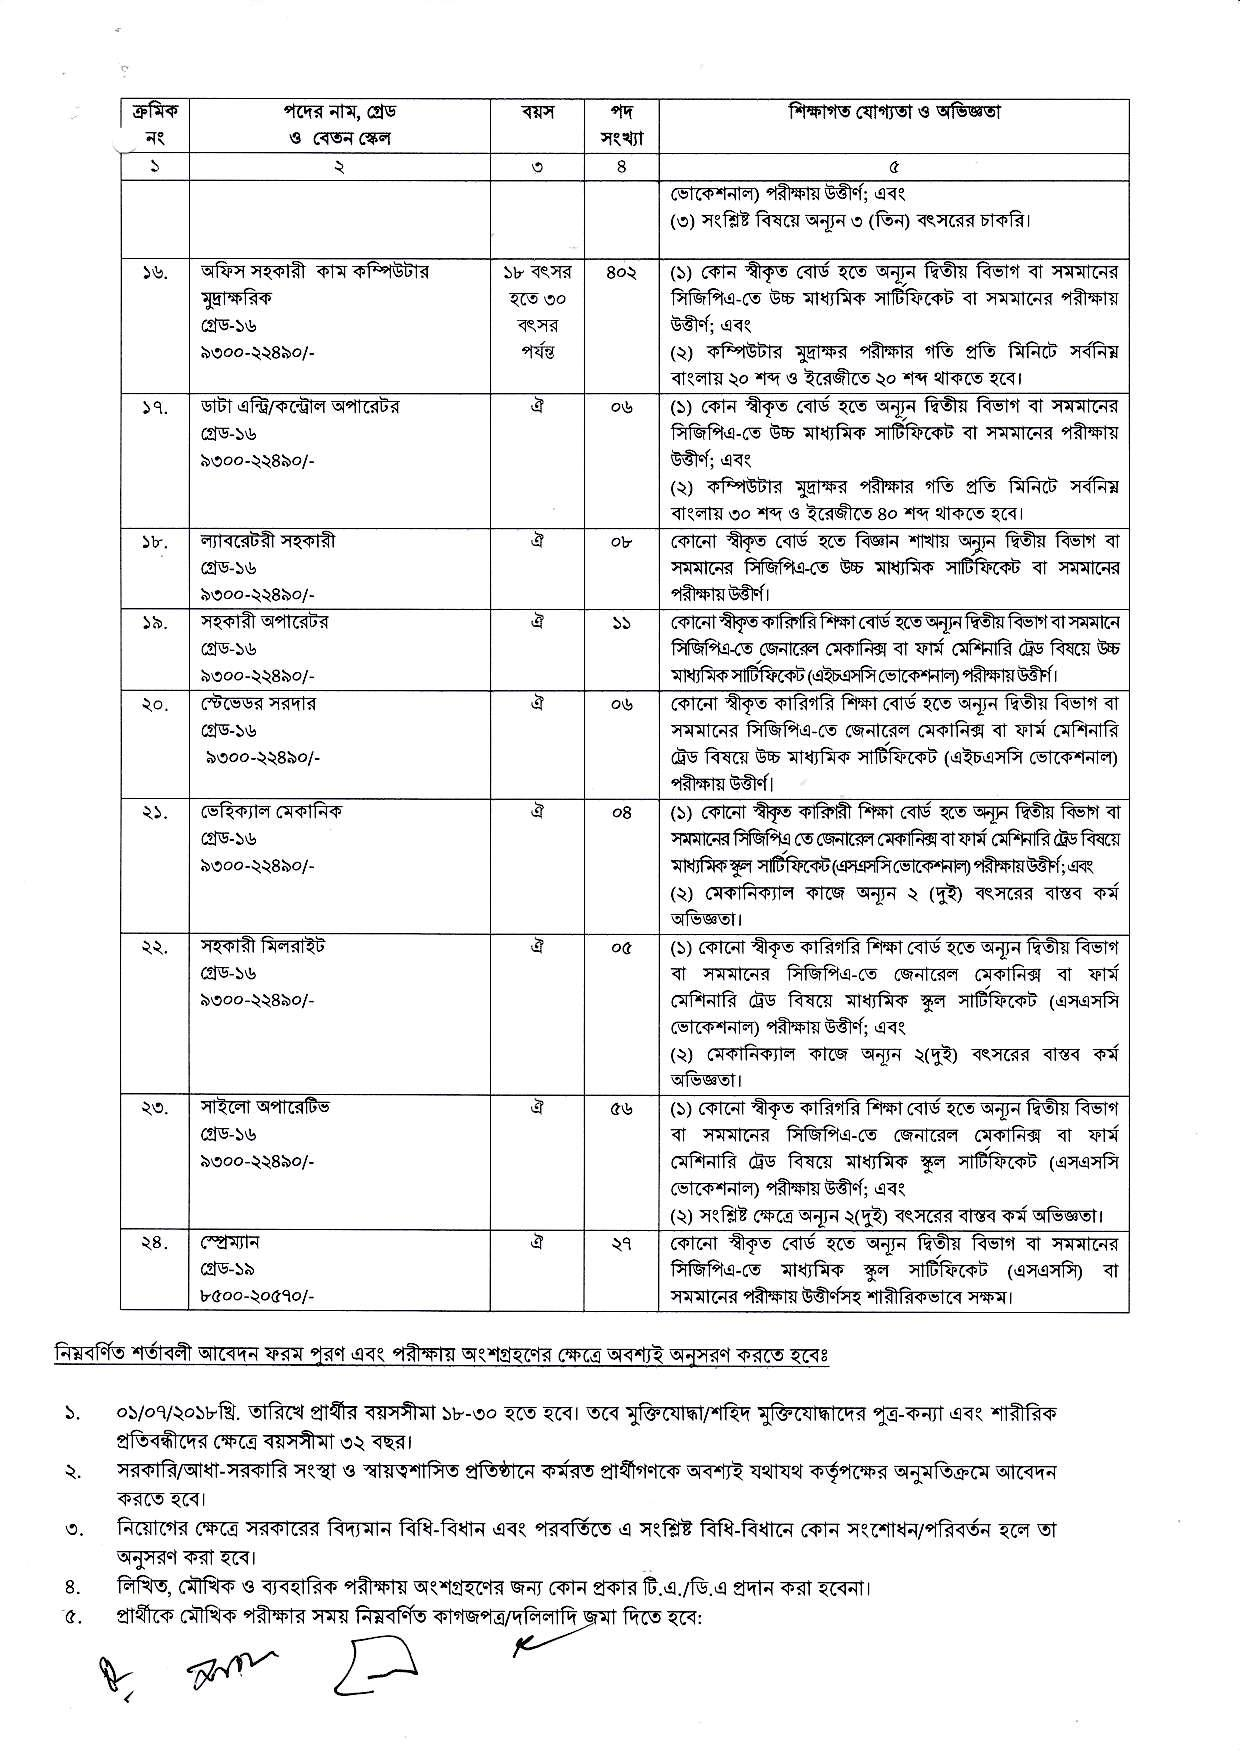 Directorate-General-of-Food-dgfood-Job-Circular-2018-page-003